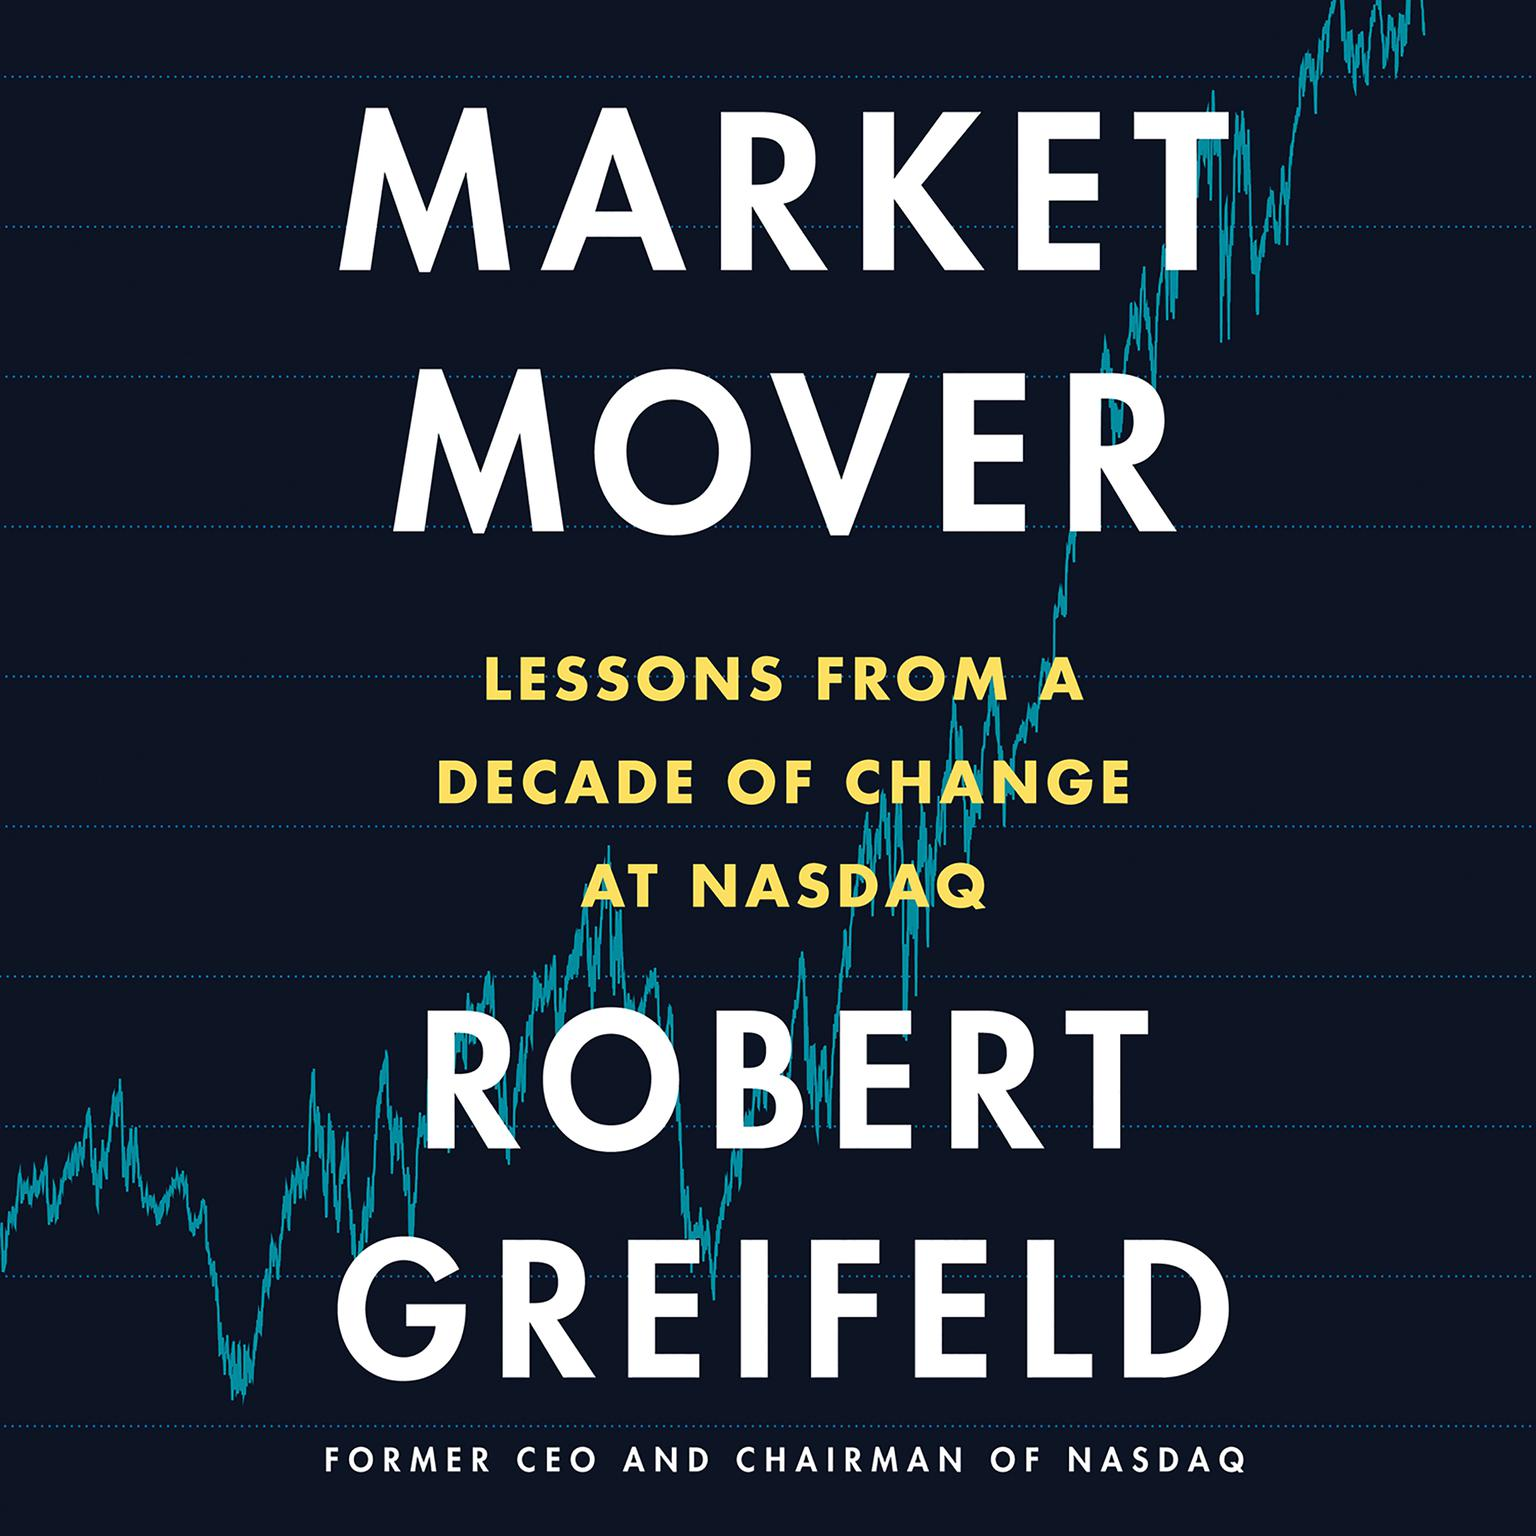 Market Mover: Lessons from a Decade of Change at Nasdaq Audiobook, by Robert Greifeld